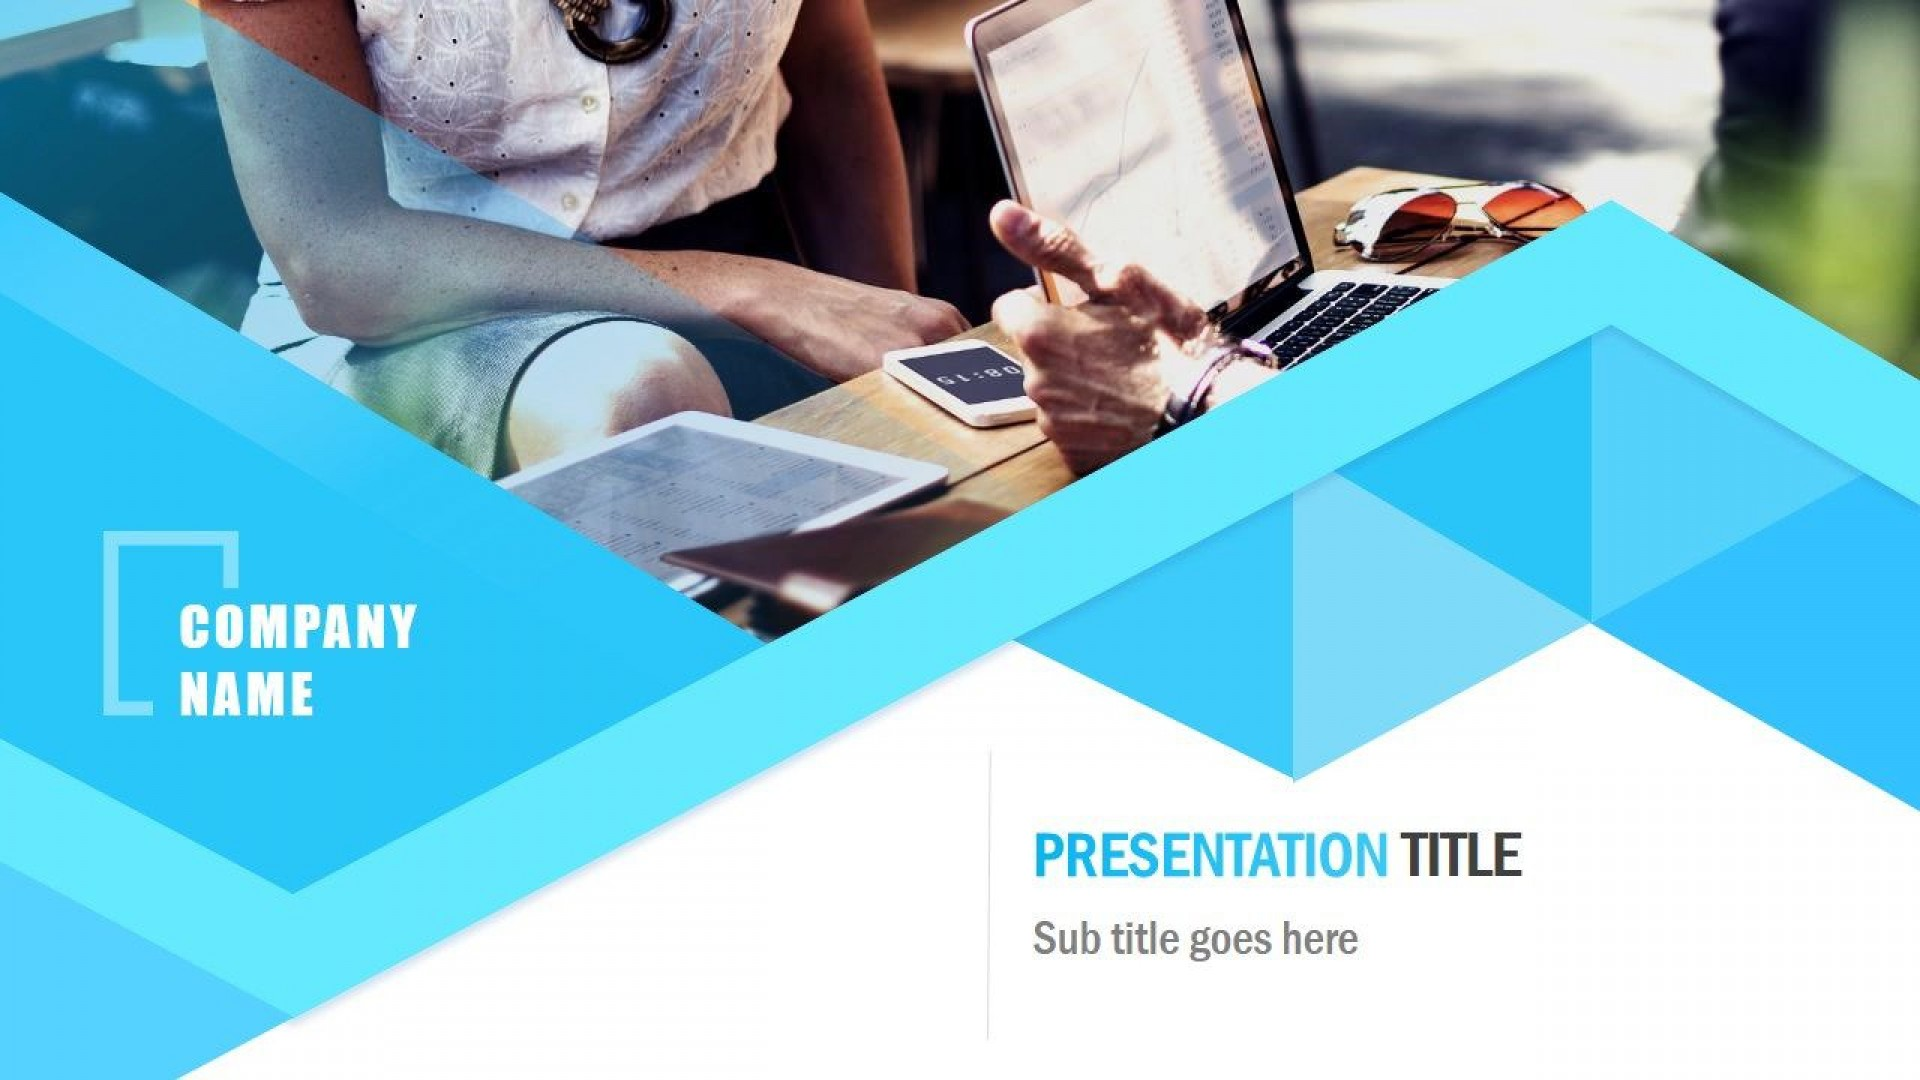 006 Outstanding Product Presentation Ppt Template Free Download Concept 1920